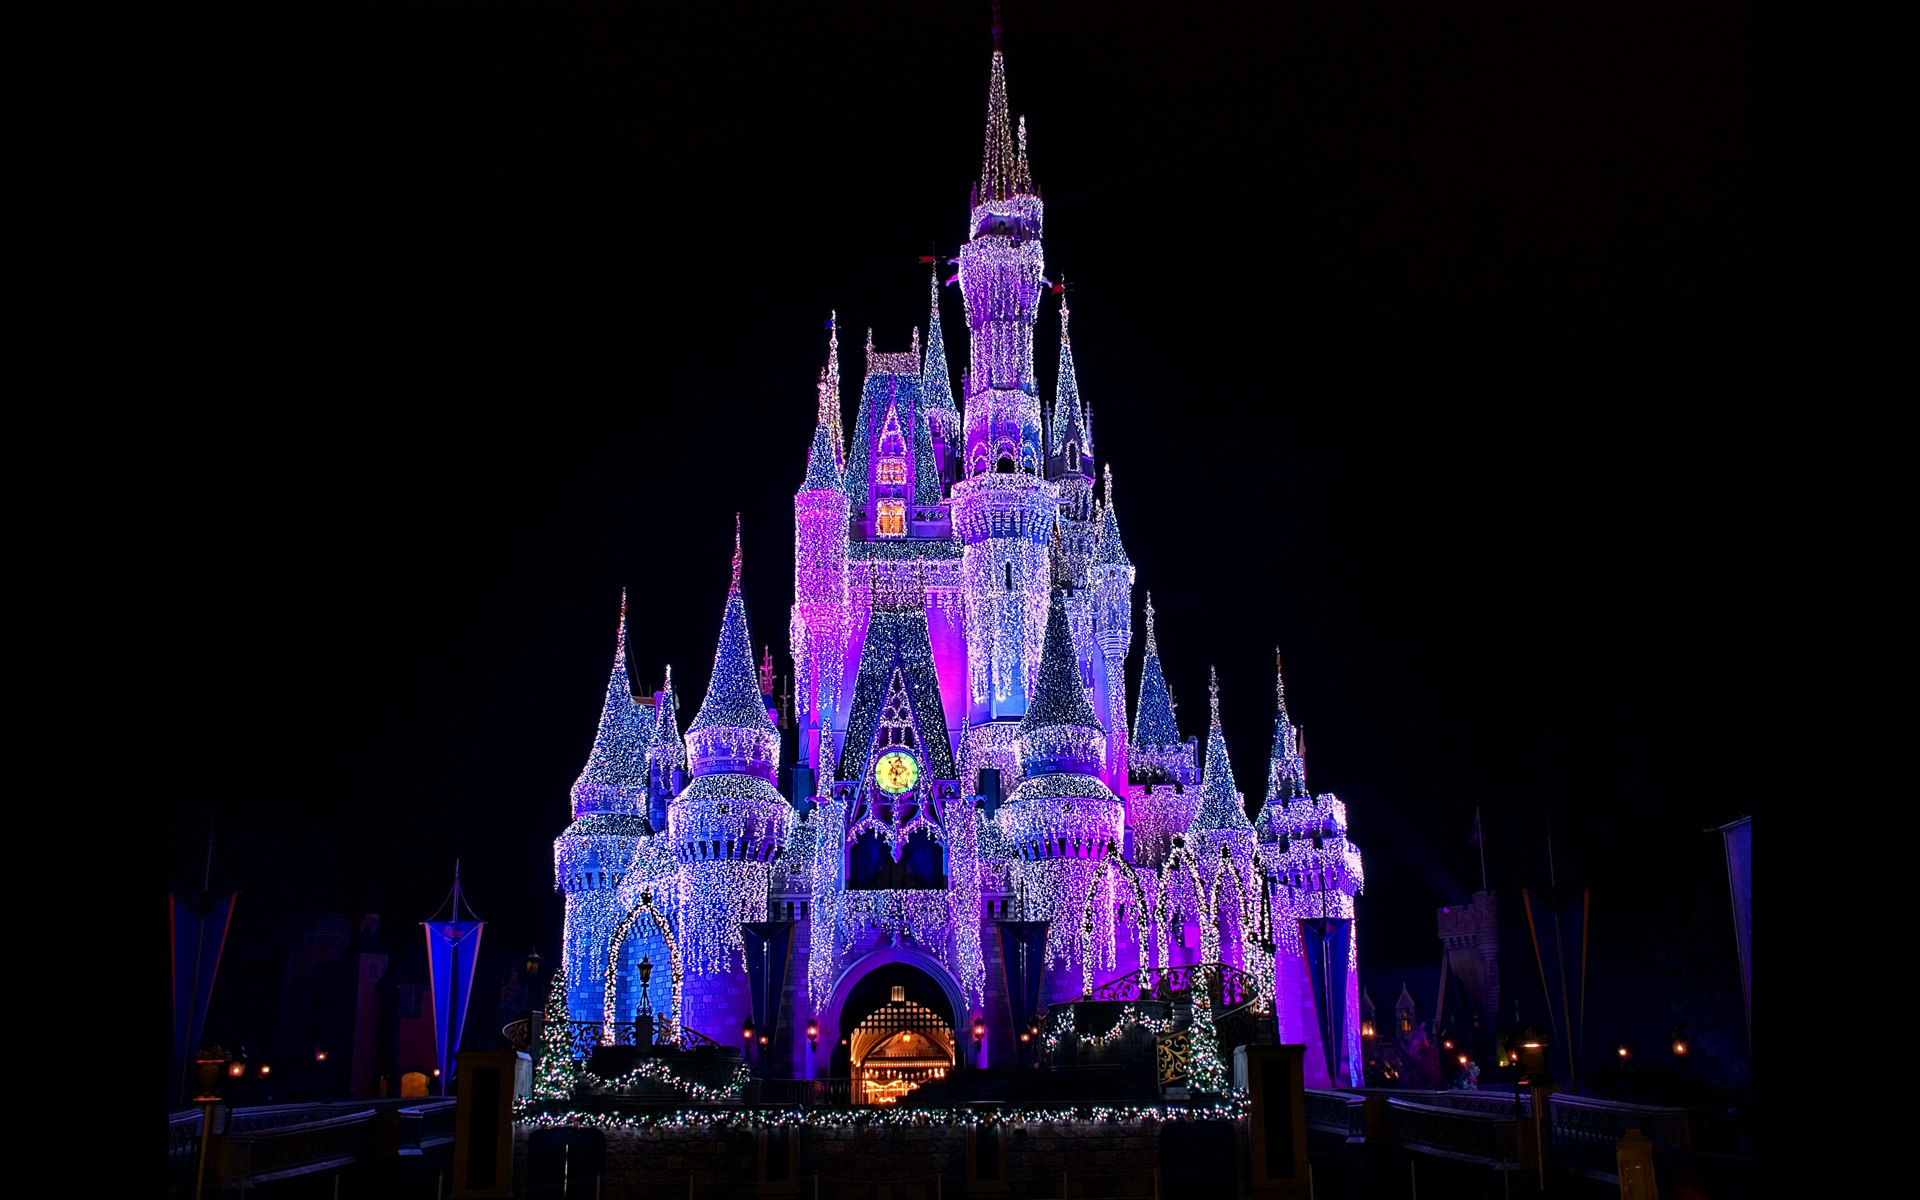 Lighted cinderella castle at disneyland full hd wallpaper and man made walt disney world cinderella castle castle light disneyland wallpaper voltagebd Choice Image